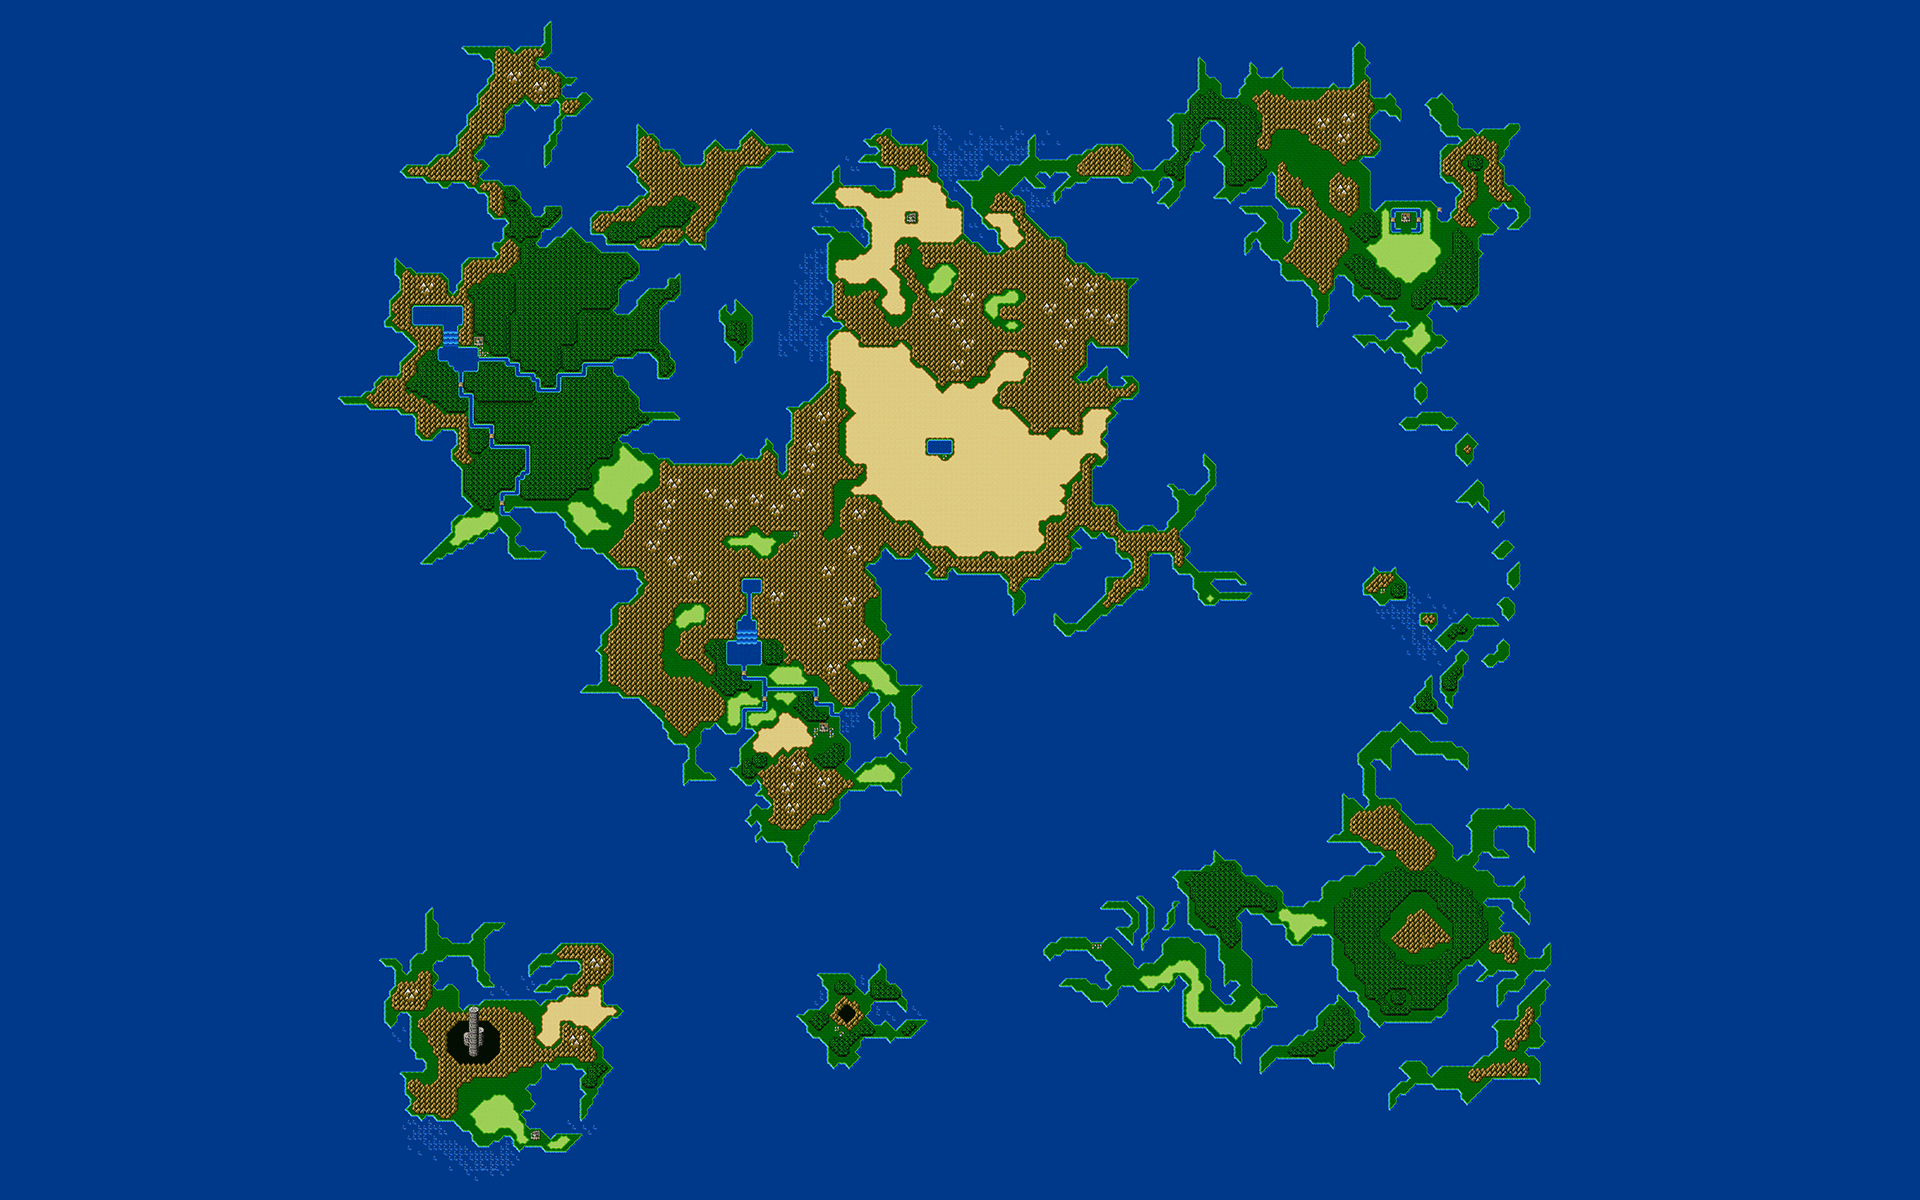 Final Fantasy 4 Map wallpapers